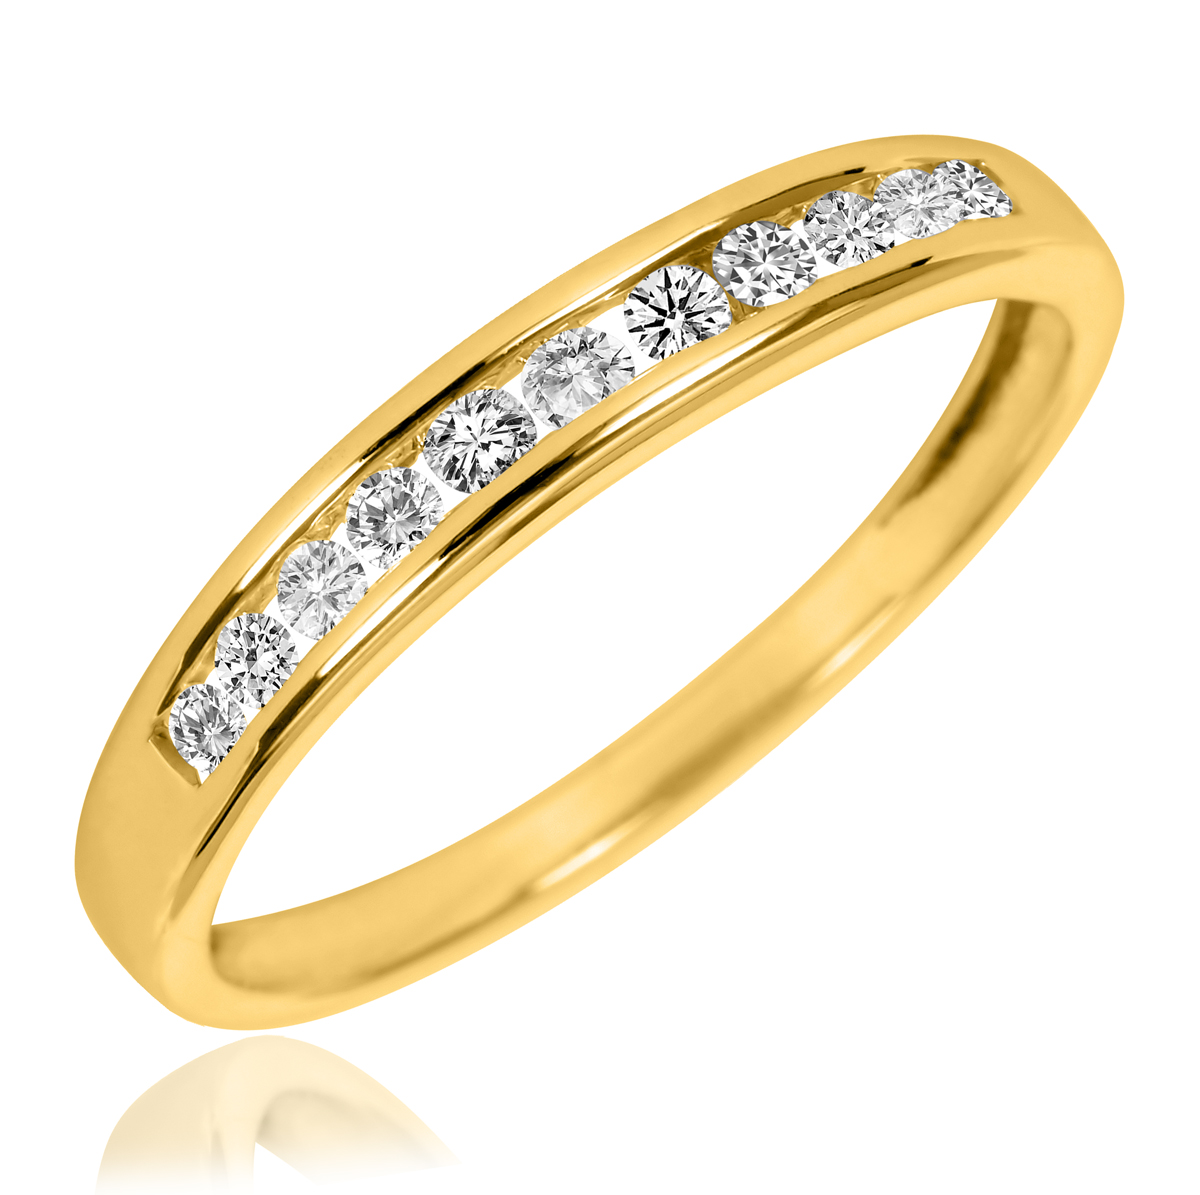 1 CT T W Diamond Women s Bridal Wedding Ring Set 14K Yellow Gold